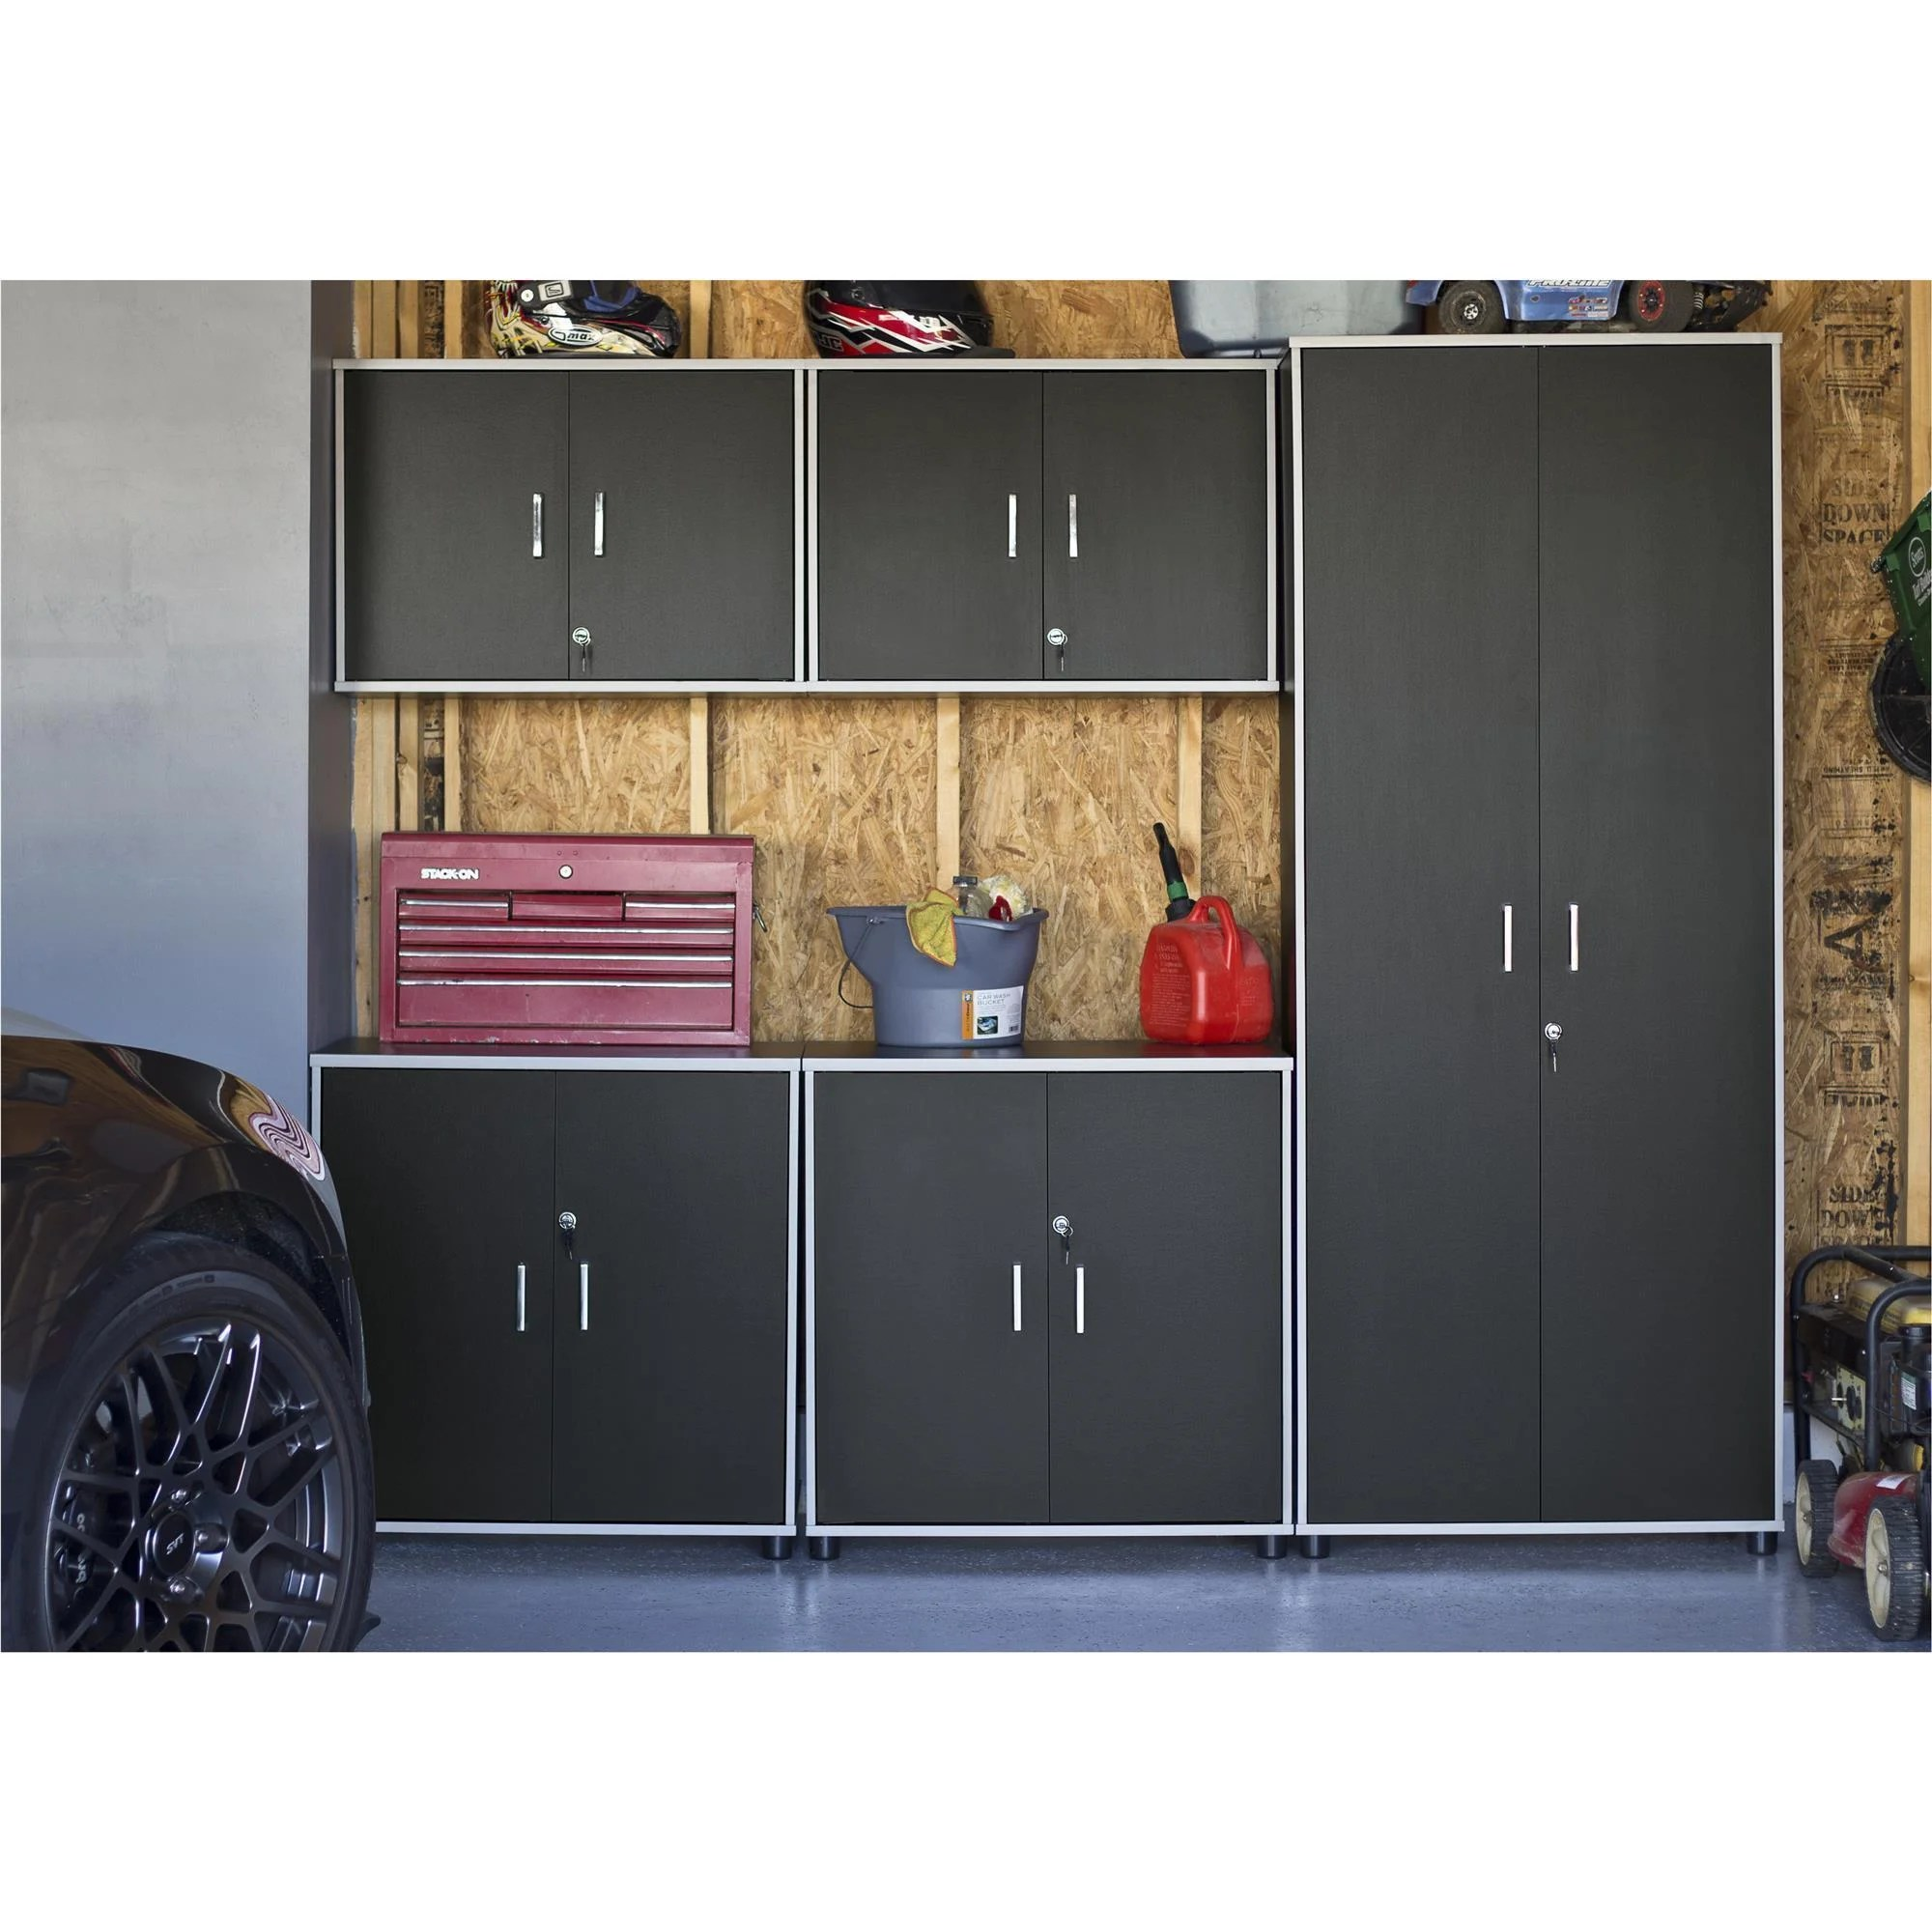 Garage Cabinets Overstock Buy Garage Storage Online At Overstock Our Best